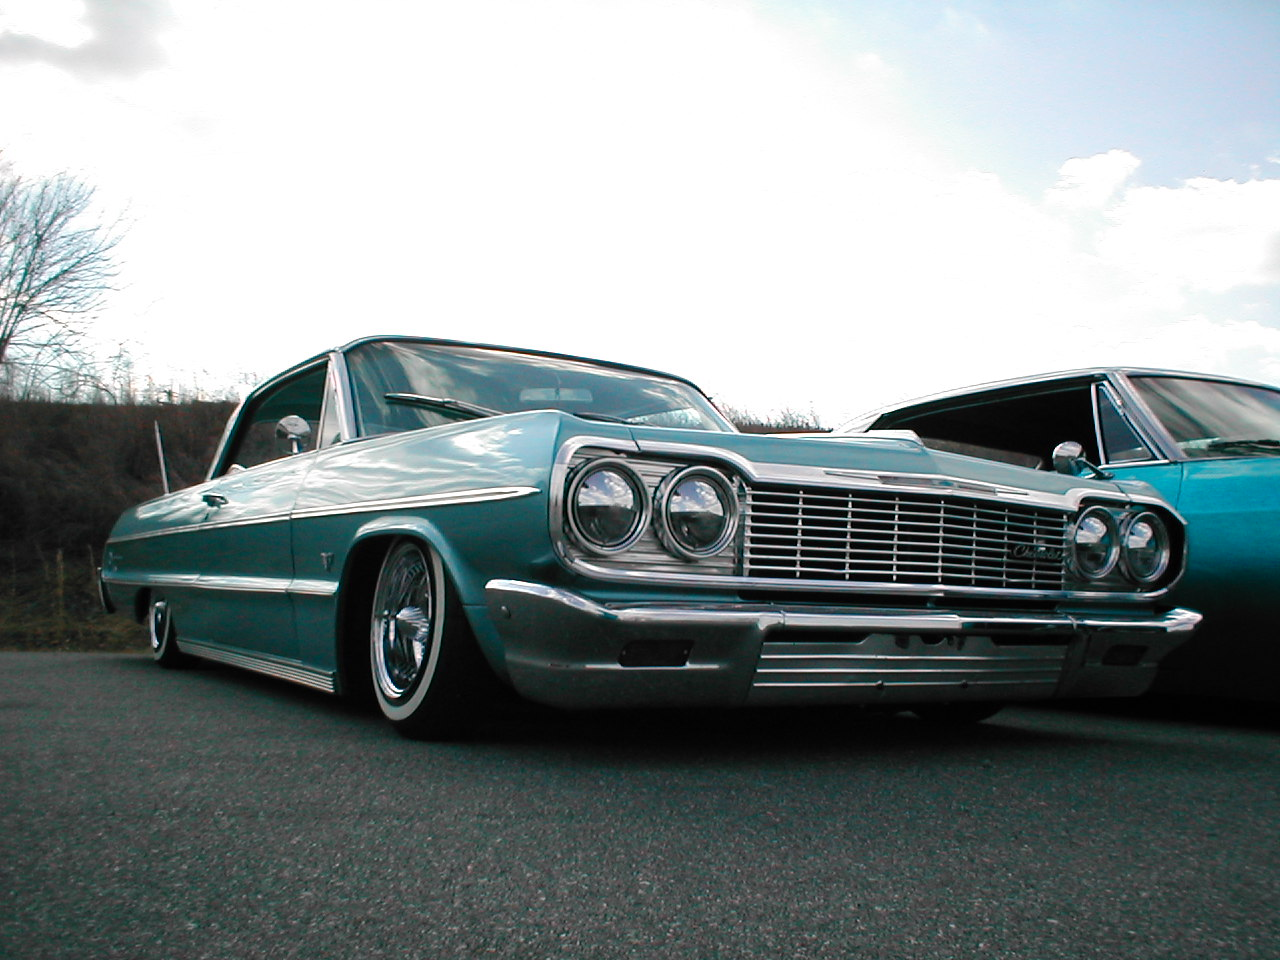 Chevrolet Impala 1280x960 px - HD Widescreen Photos